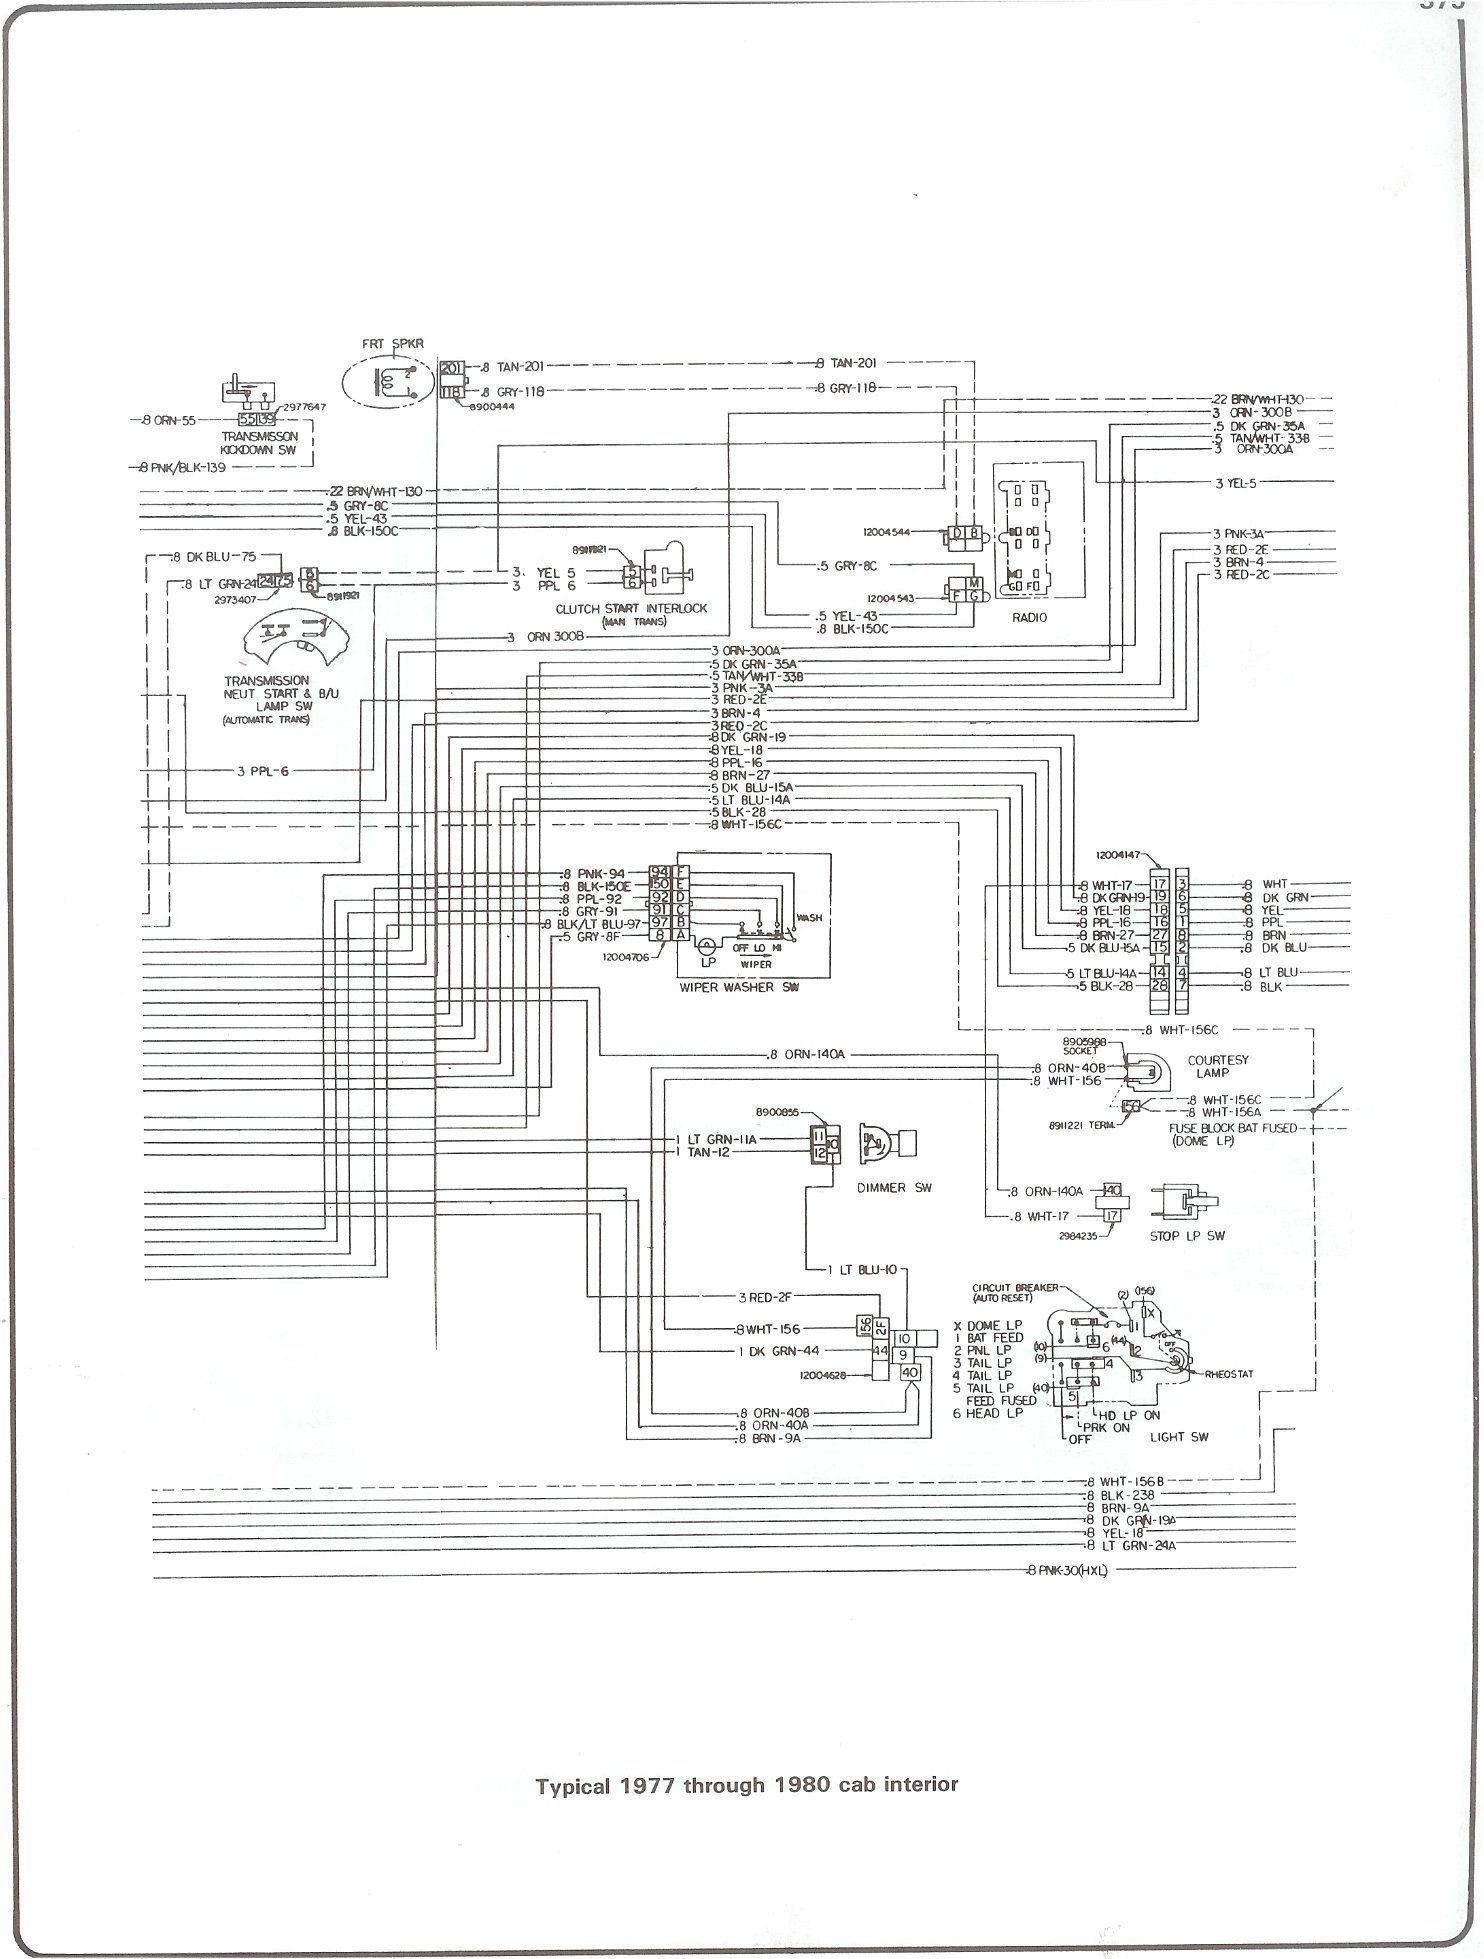 Chevy Blazer Wiring Diagram Furthermore 1986 Chevy Blazer Wiring